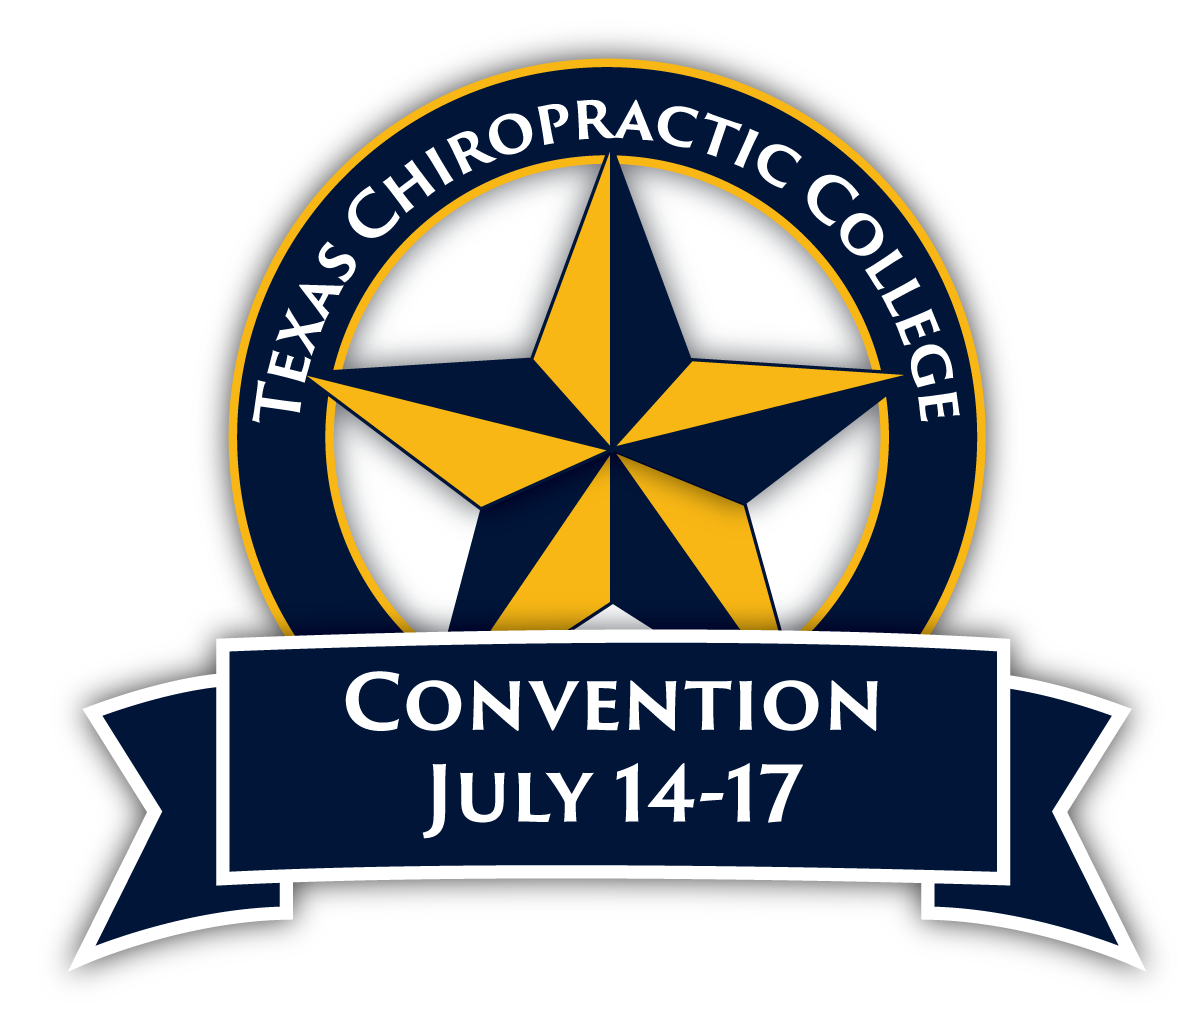 TCC-2021-convention-july-14-17